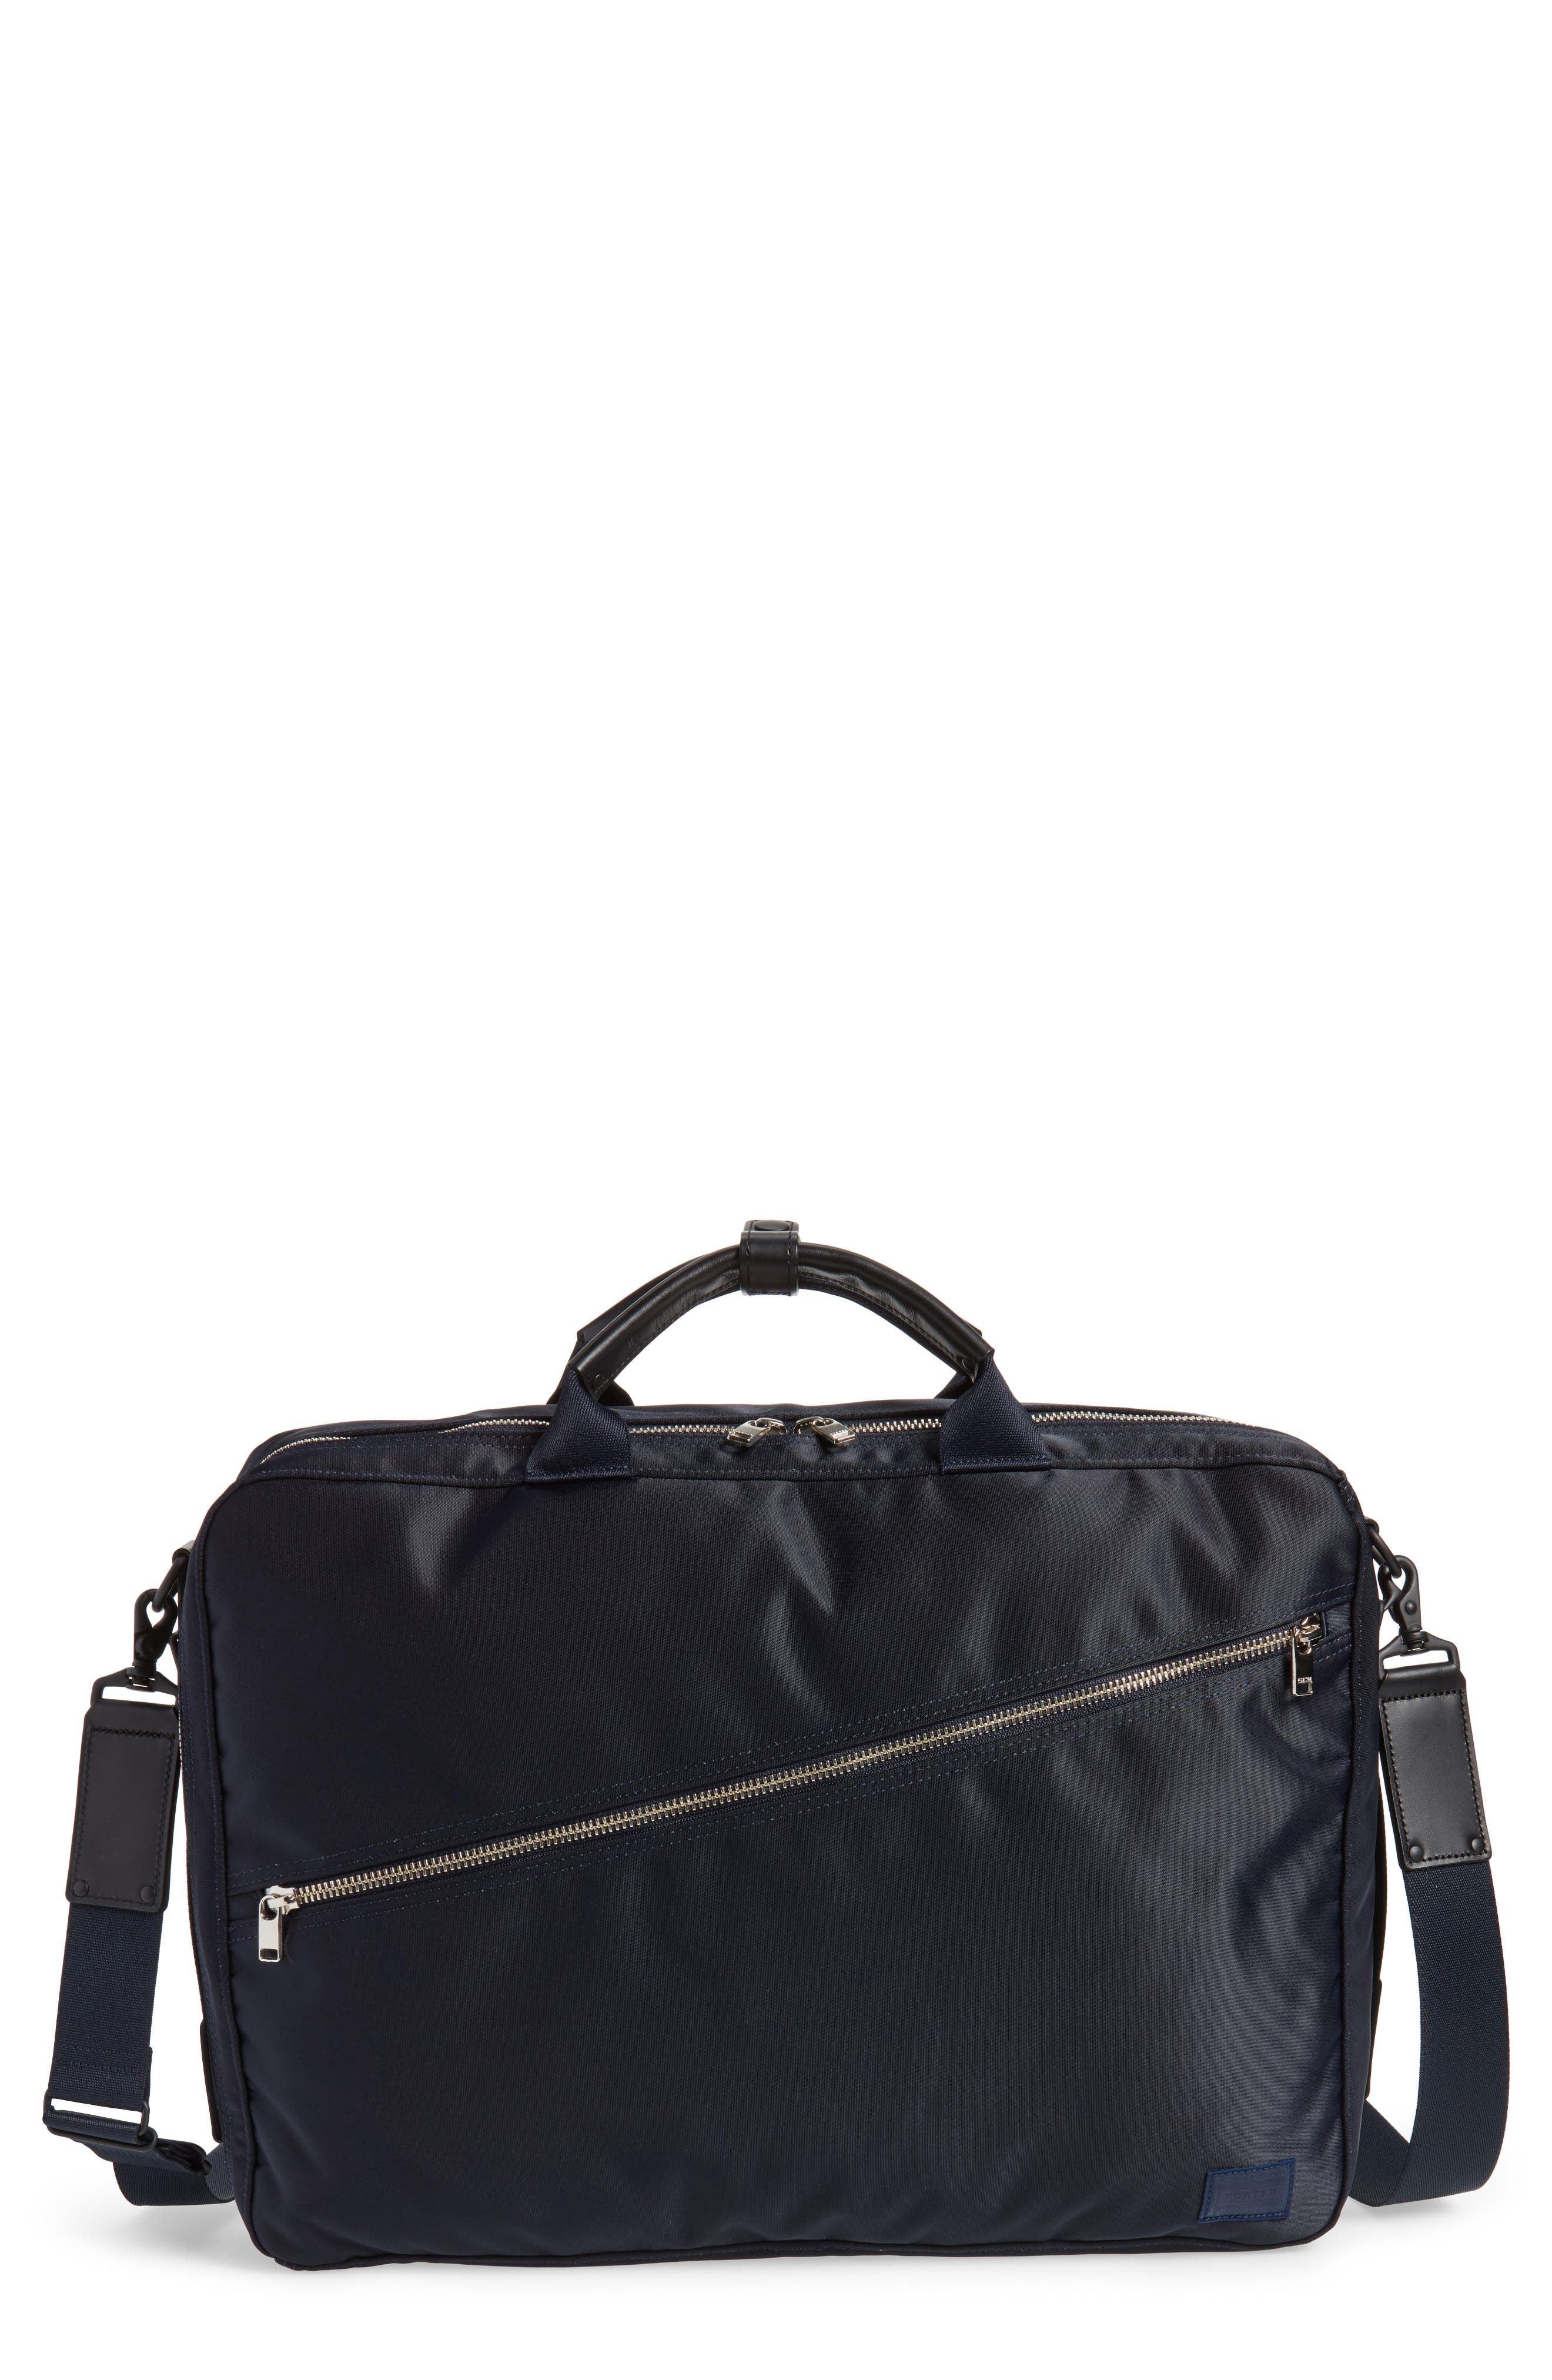 Porter-Yoshida & Co. Lift Convertible Briefcase,                         Main,                         color, Navy